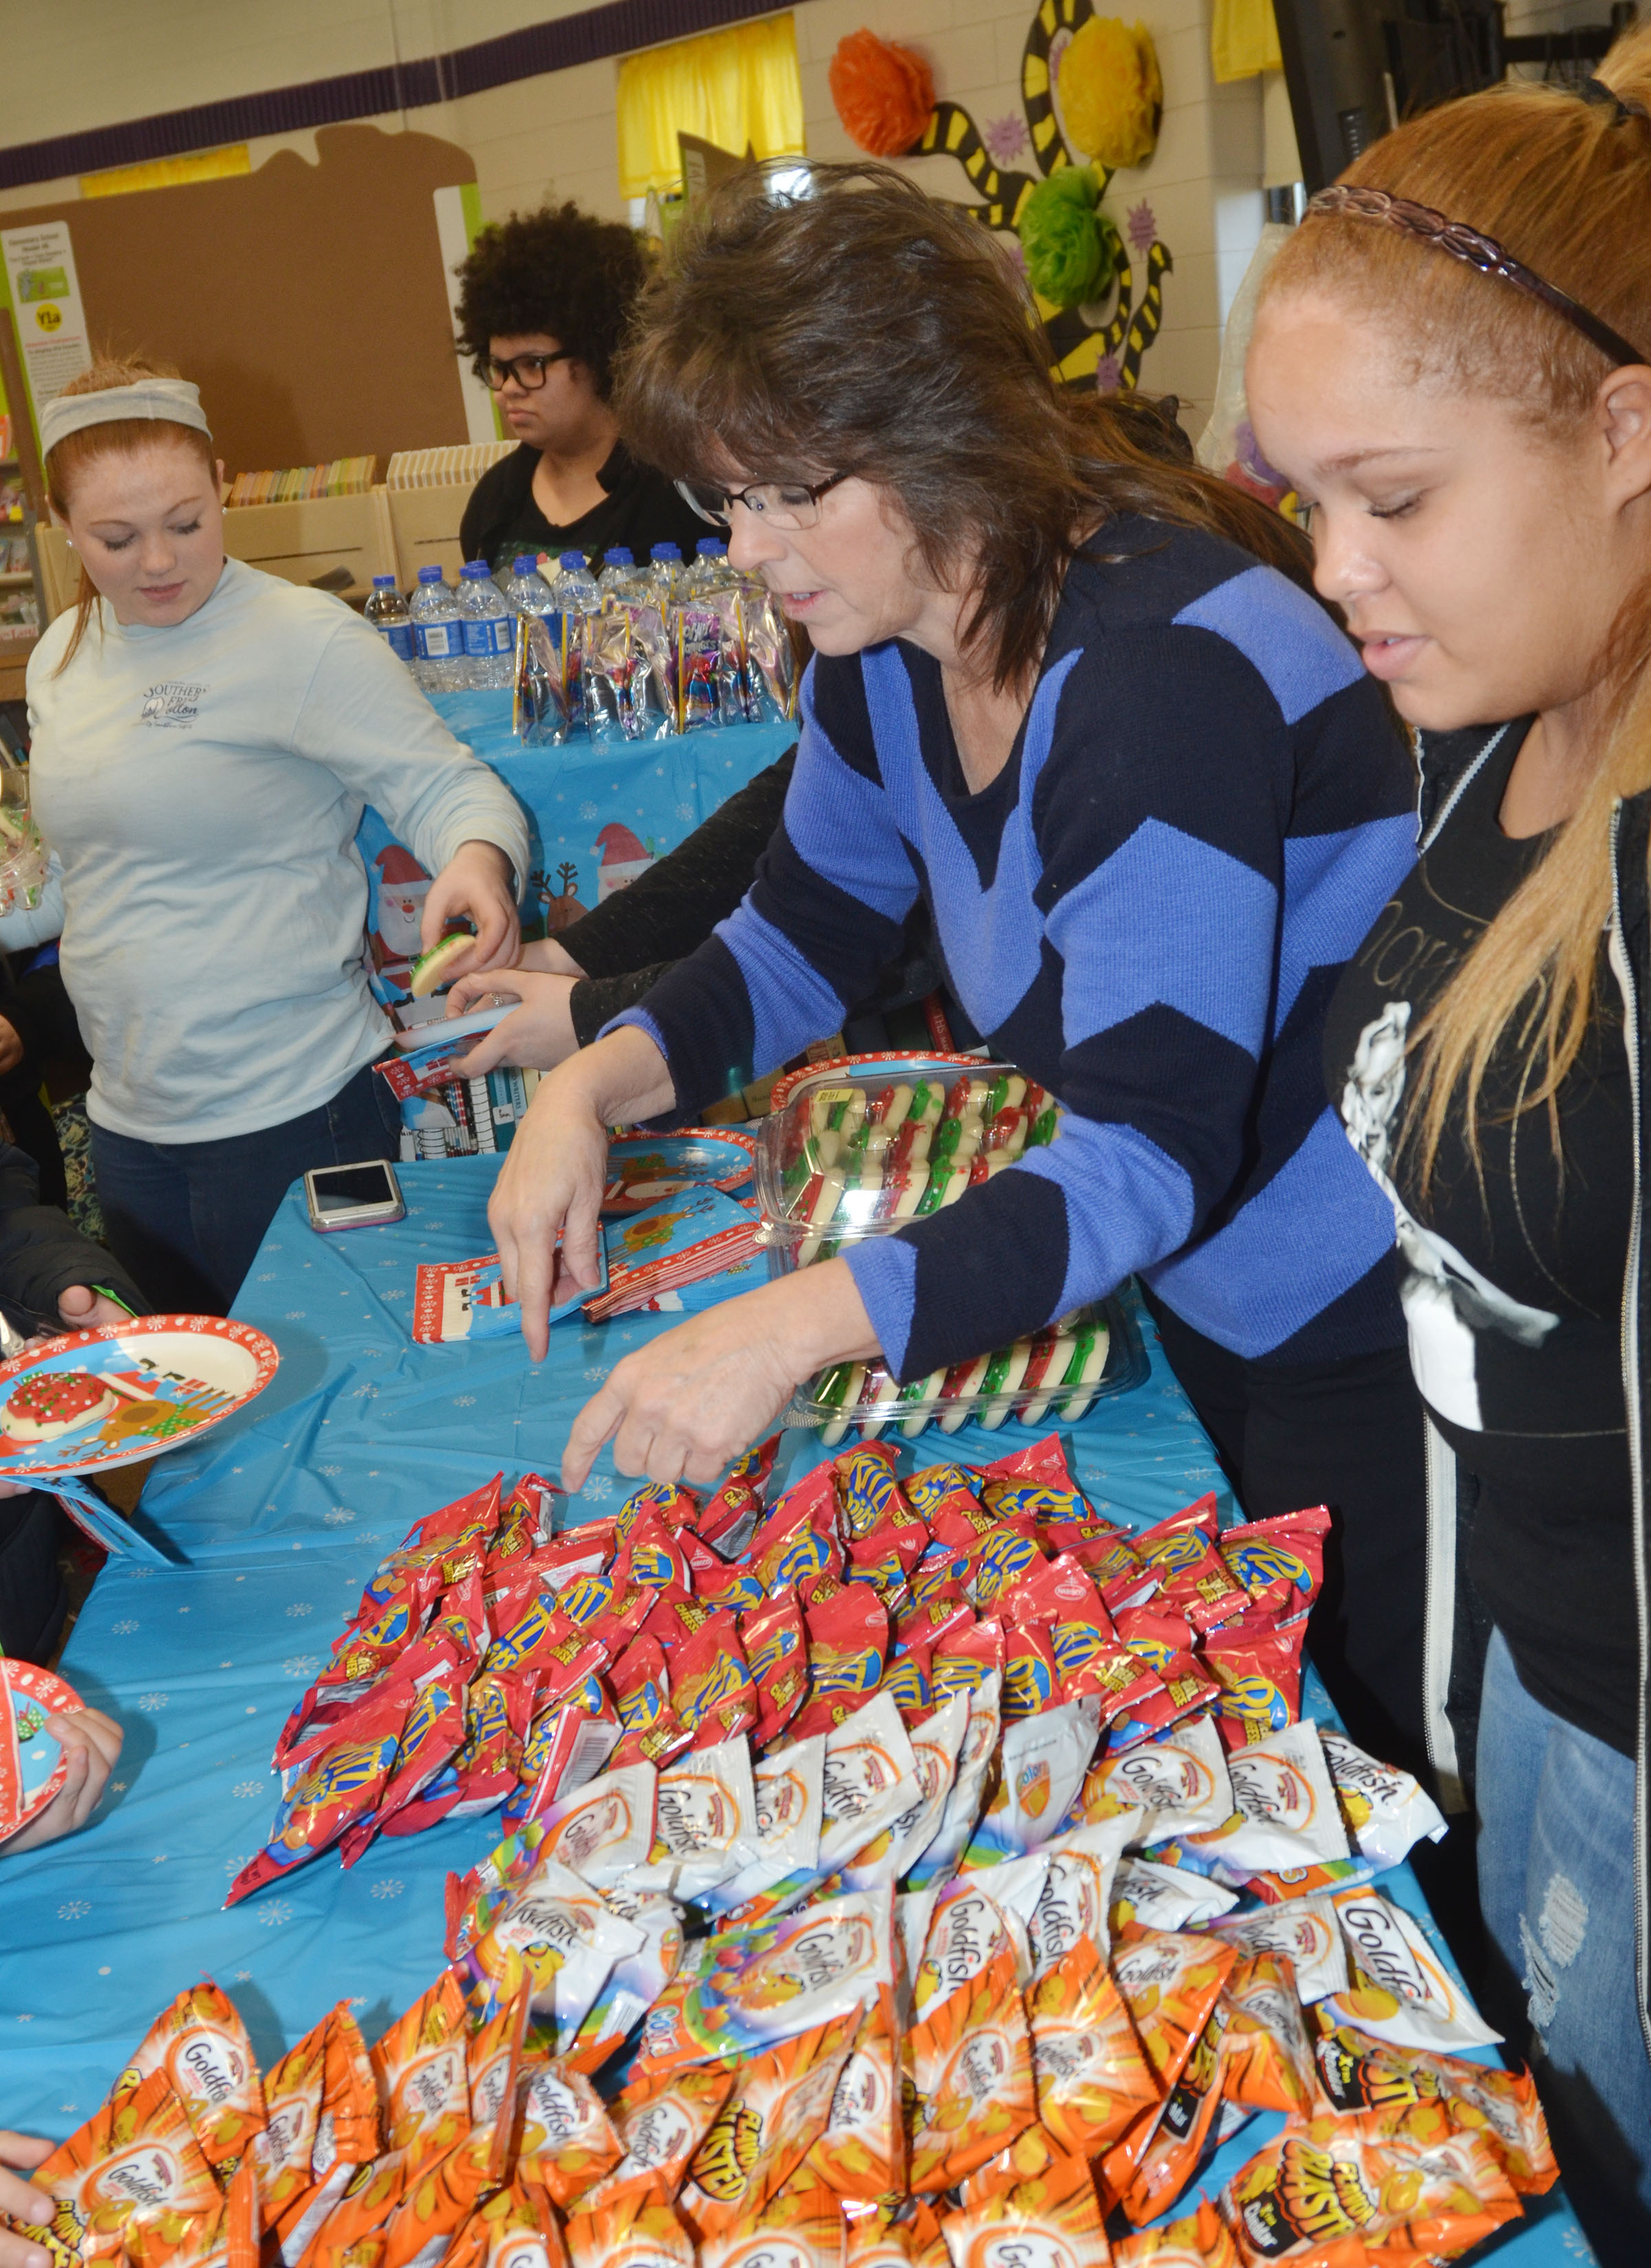 CHS FCCLA members, from left, sophomores Bethany Harris and Jaylah Tucker, sponsor Deanna Campbell and member Shailyn Fields, a junior, serve snacks at a Christmas party for Campbellsville Elementary School students.